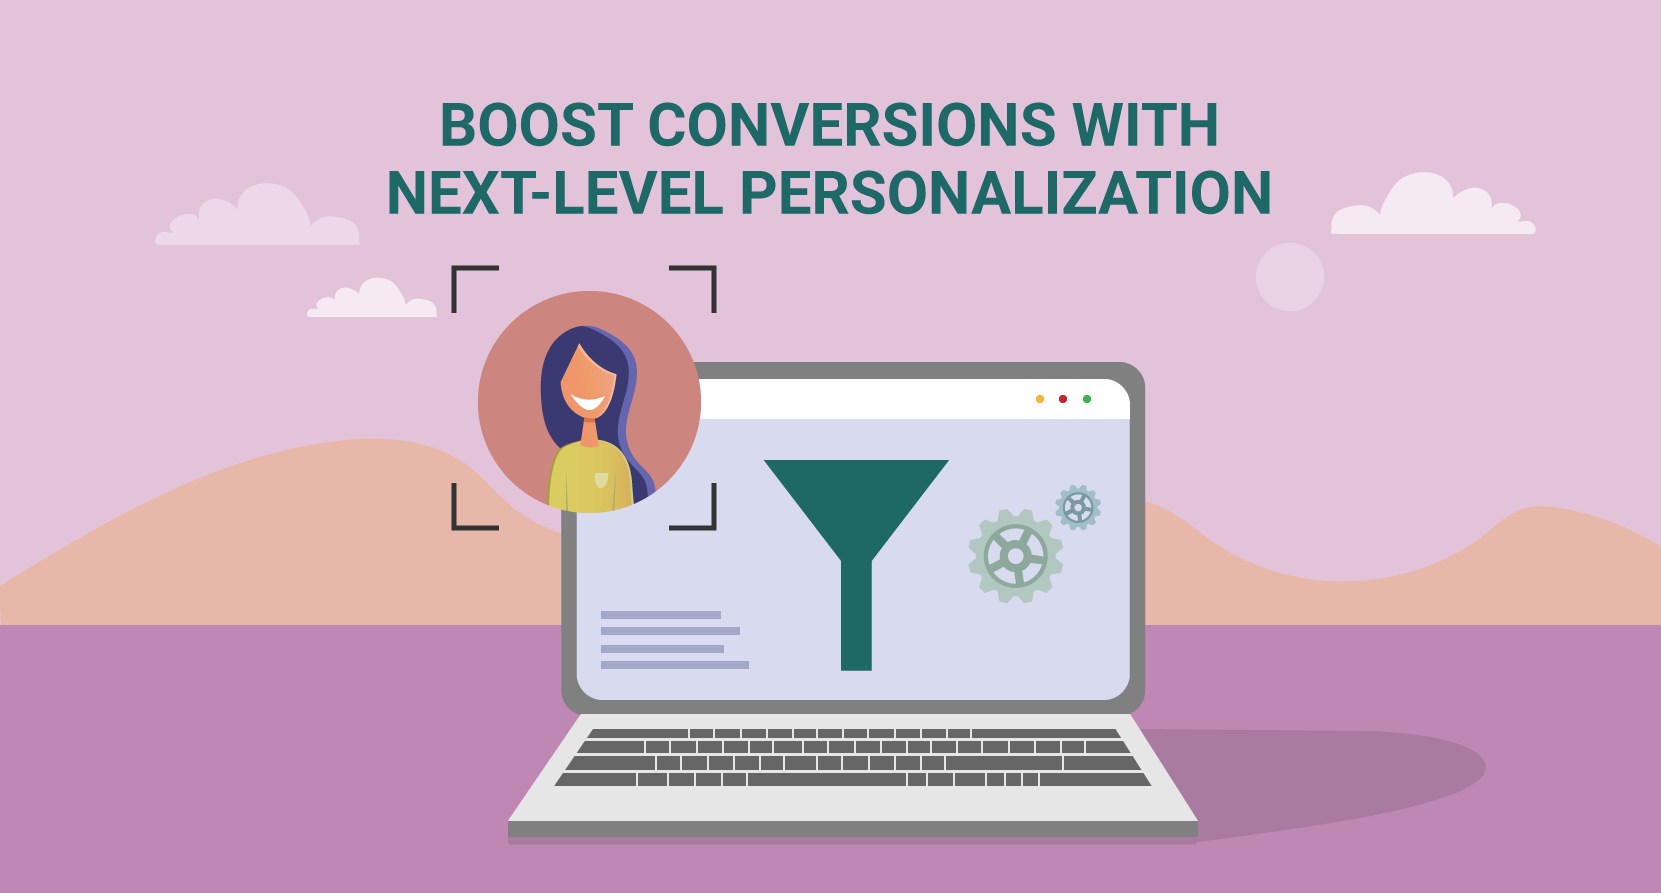 Boost your conversions with next-level personalization strategies